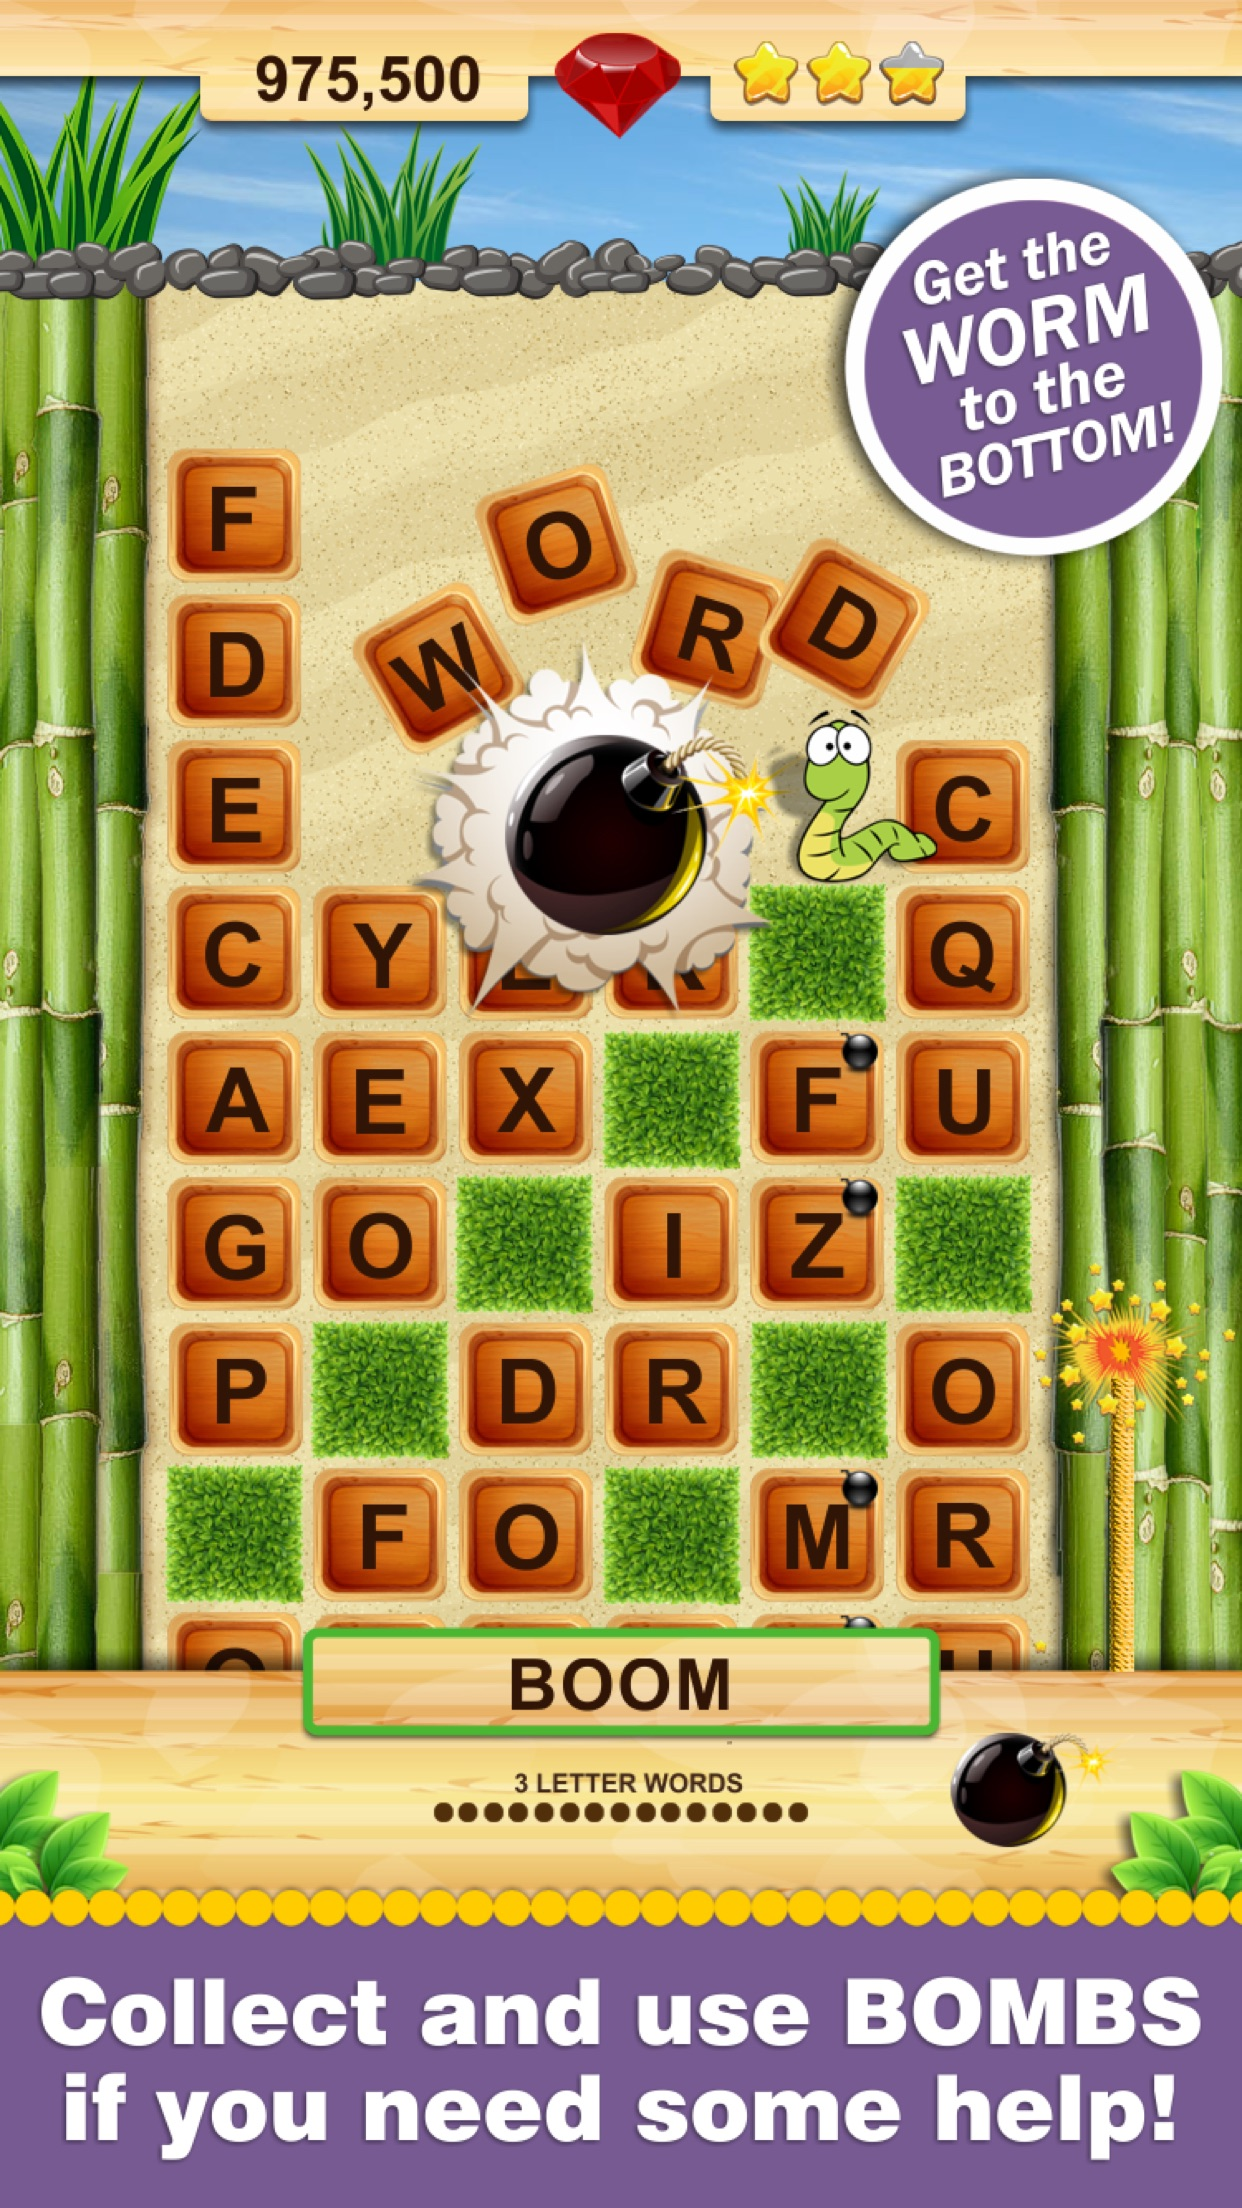 Word Wow - Spell words to get worm to the bottom! Screenshot